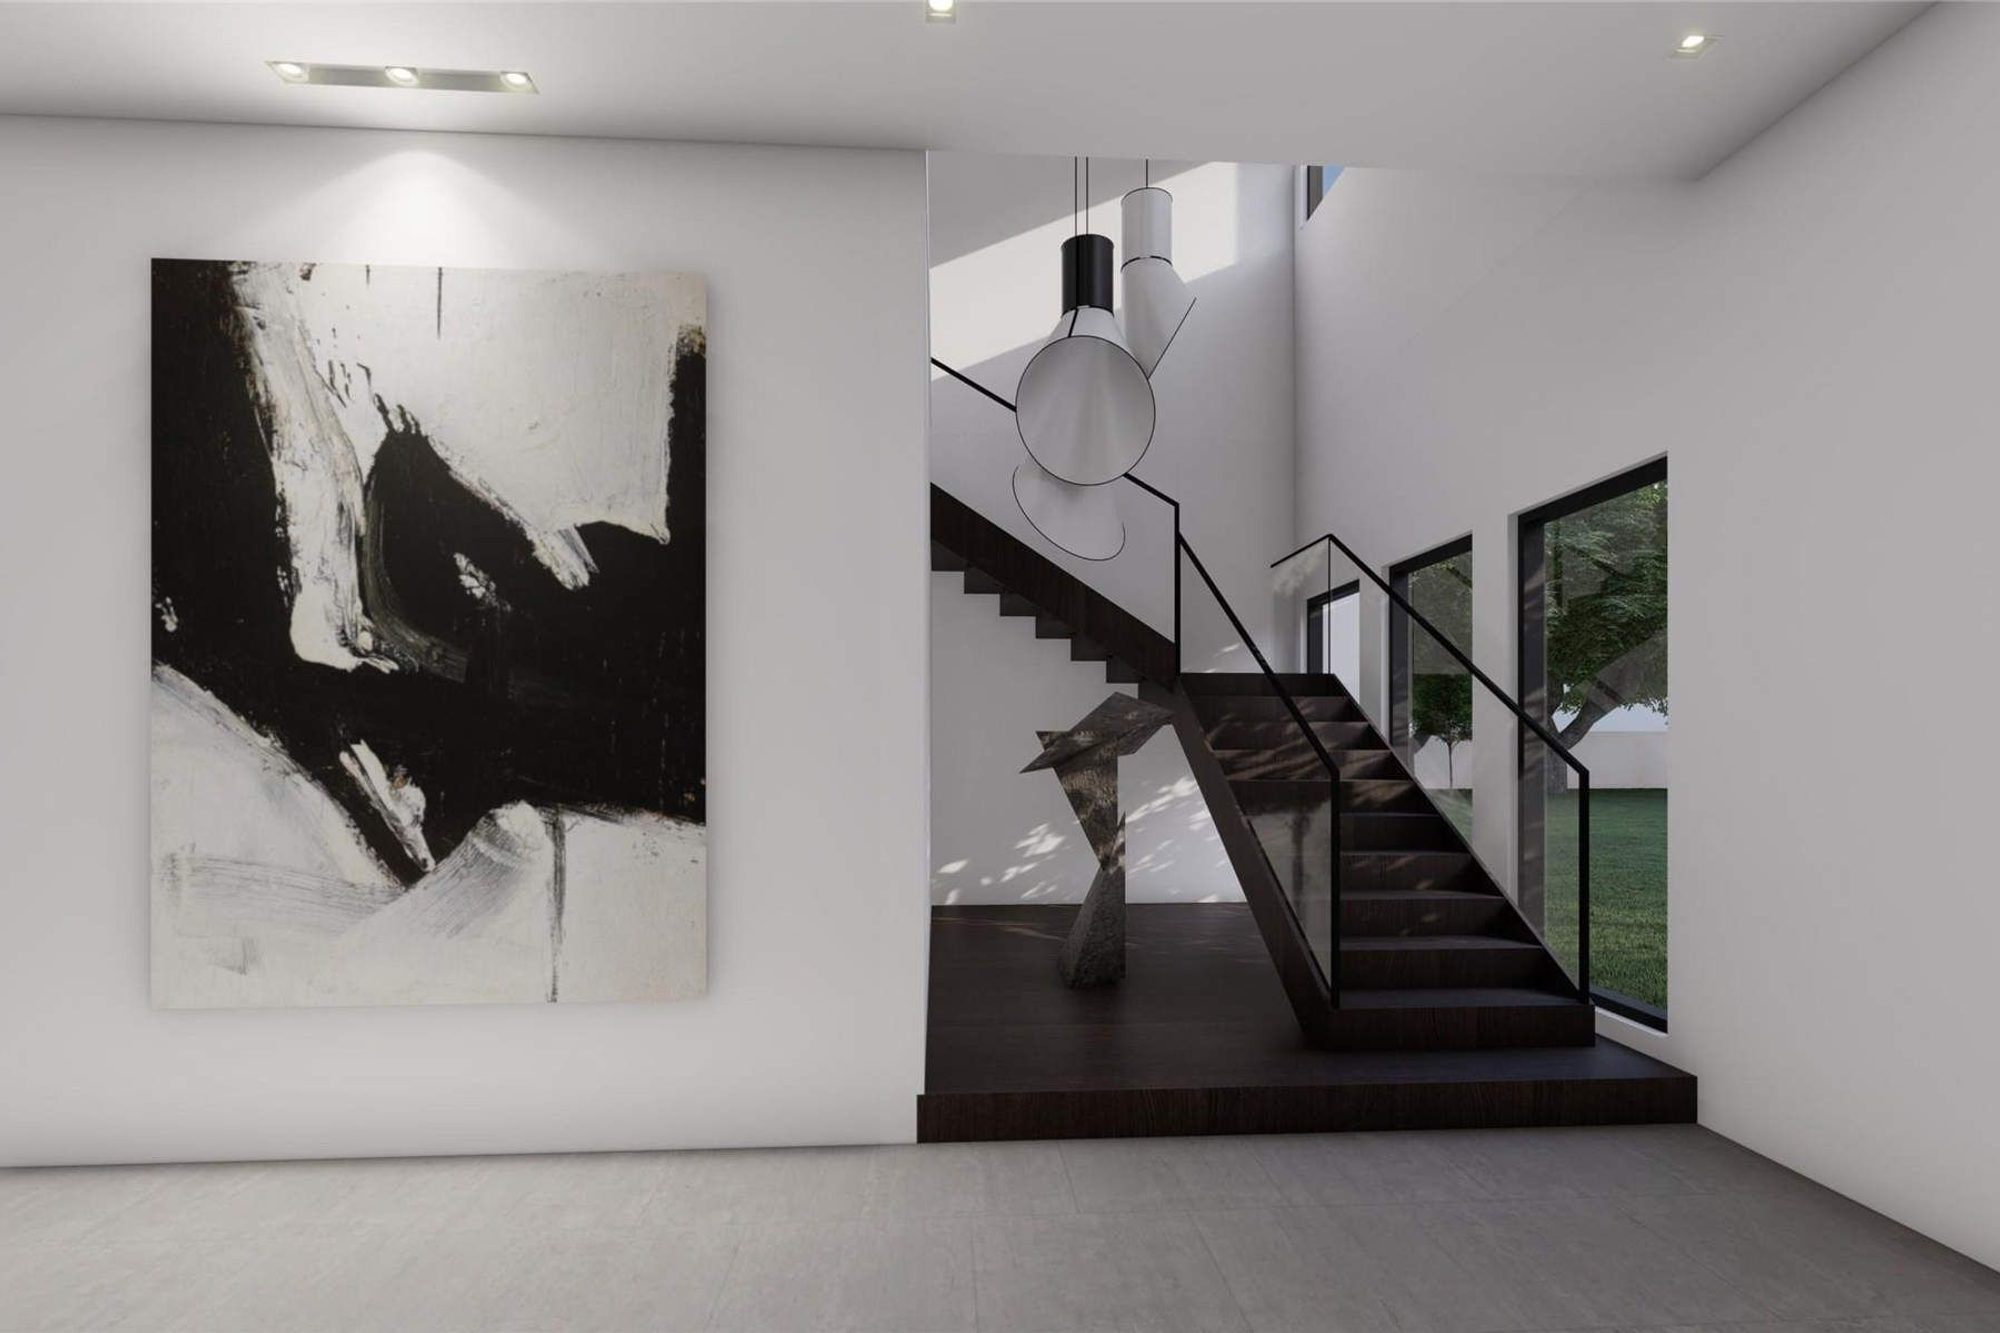 Modern Staircase Design Contemporary Stair Design Ideas   Black And White Stairs Design   Farmhouse   Photography   Concept   Disappearing   Grey Background